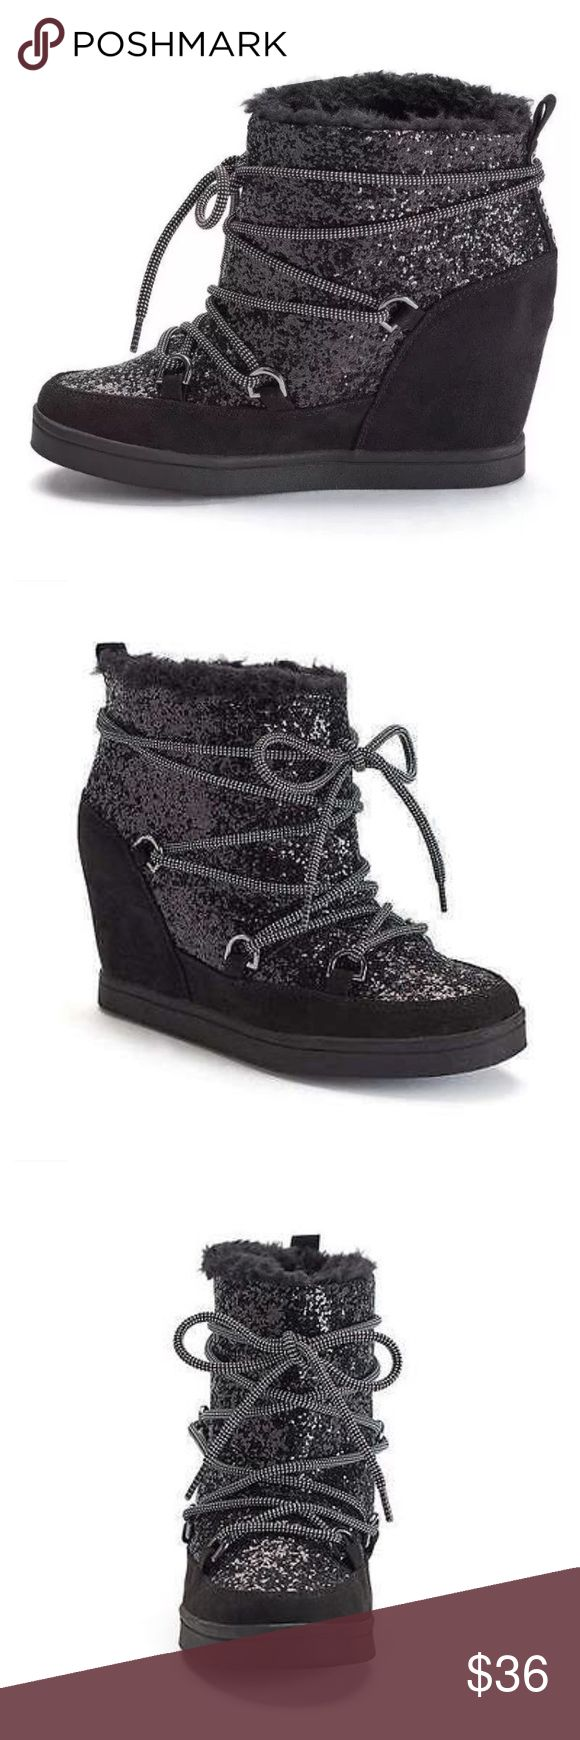 Juicy Couture Mareen Sport Boot Glitter lace up wedges from Juicy Couture. Faux fur lining. Cushioned padded insole. Juicy Couture Shoes